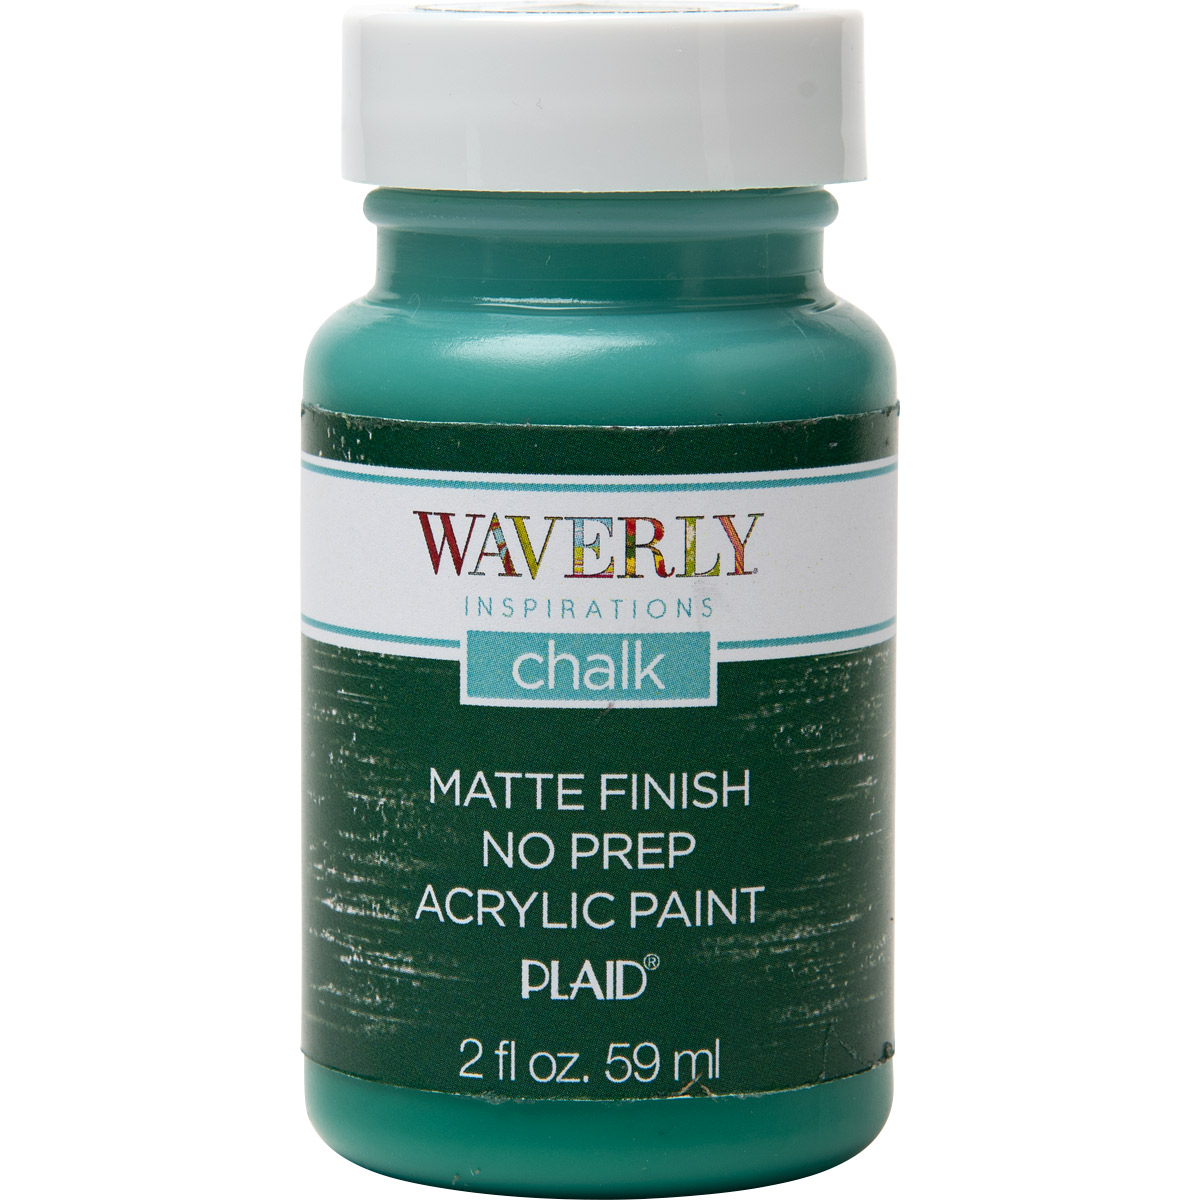 Waverly ® Inspirations Chalk Finish Acrylic Paint - Malachite, 2 oz. - 44632E